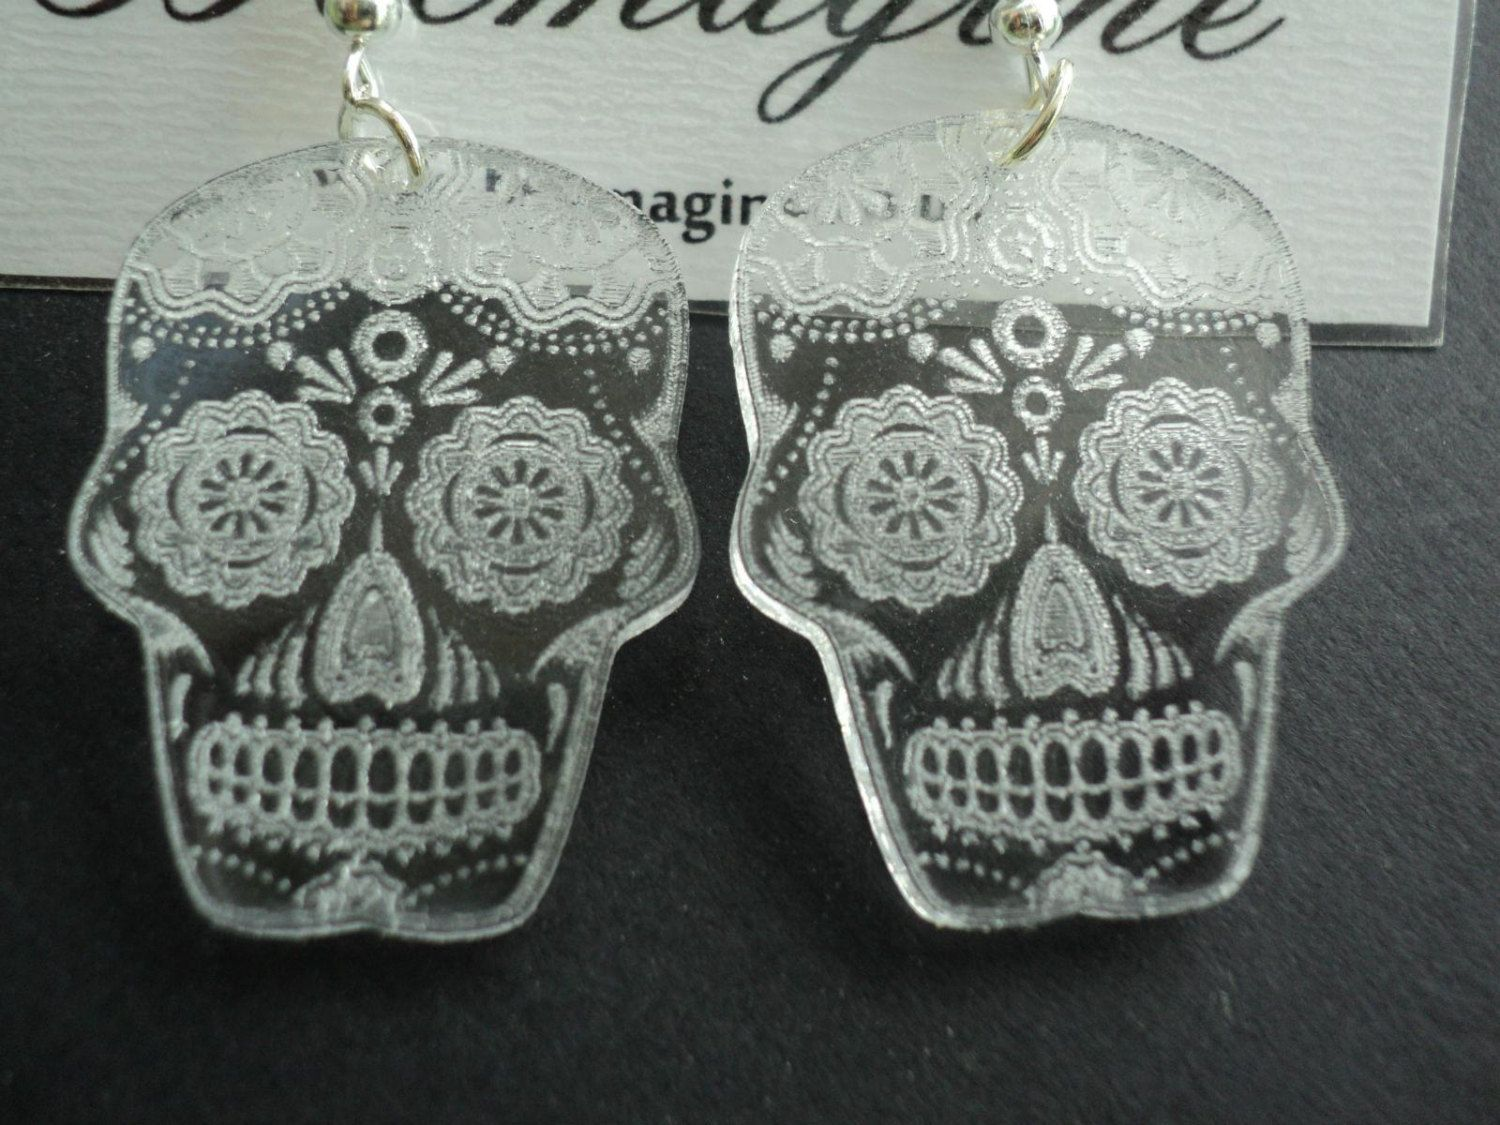 006fe0d4b Laser cut and engraved clear acrylic earrings Sugar by Beemagine, £3.99